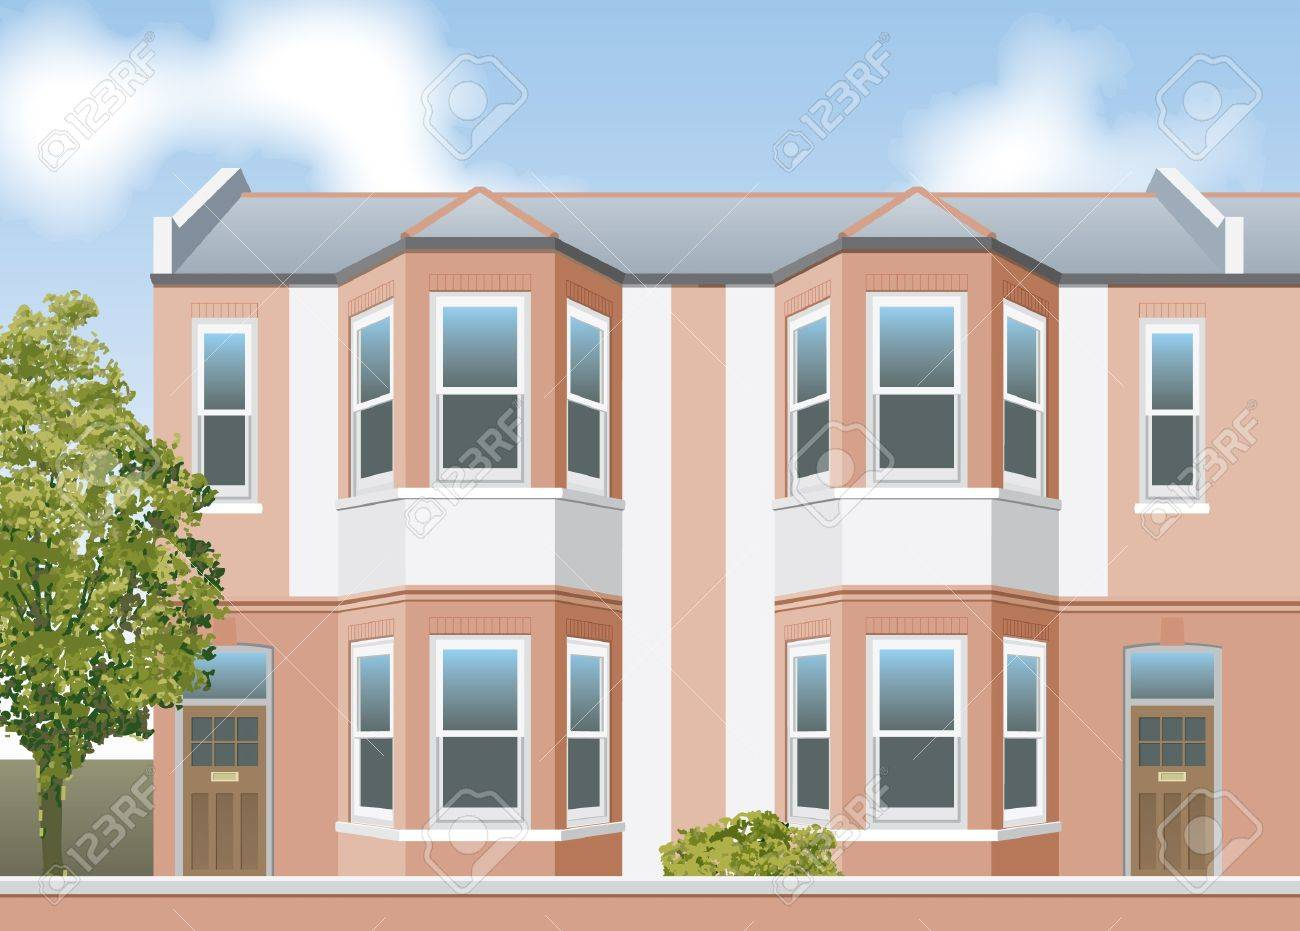 Victorian style terraced houses elevation Stock Vector - 13477250